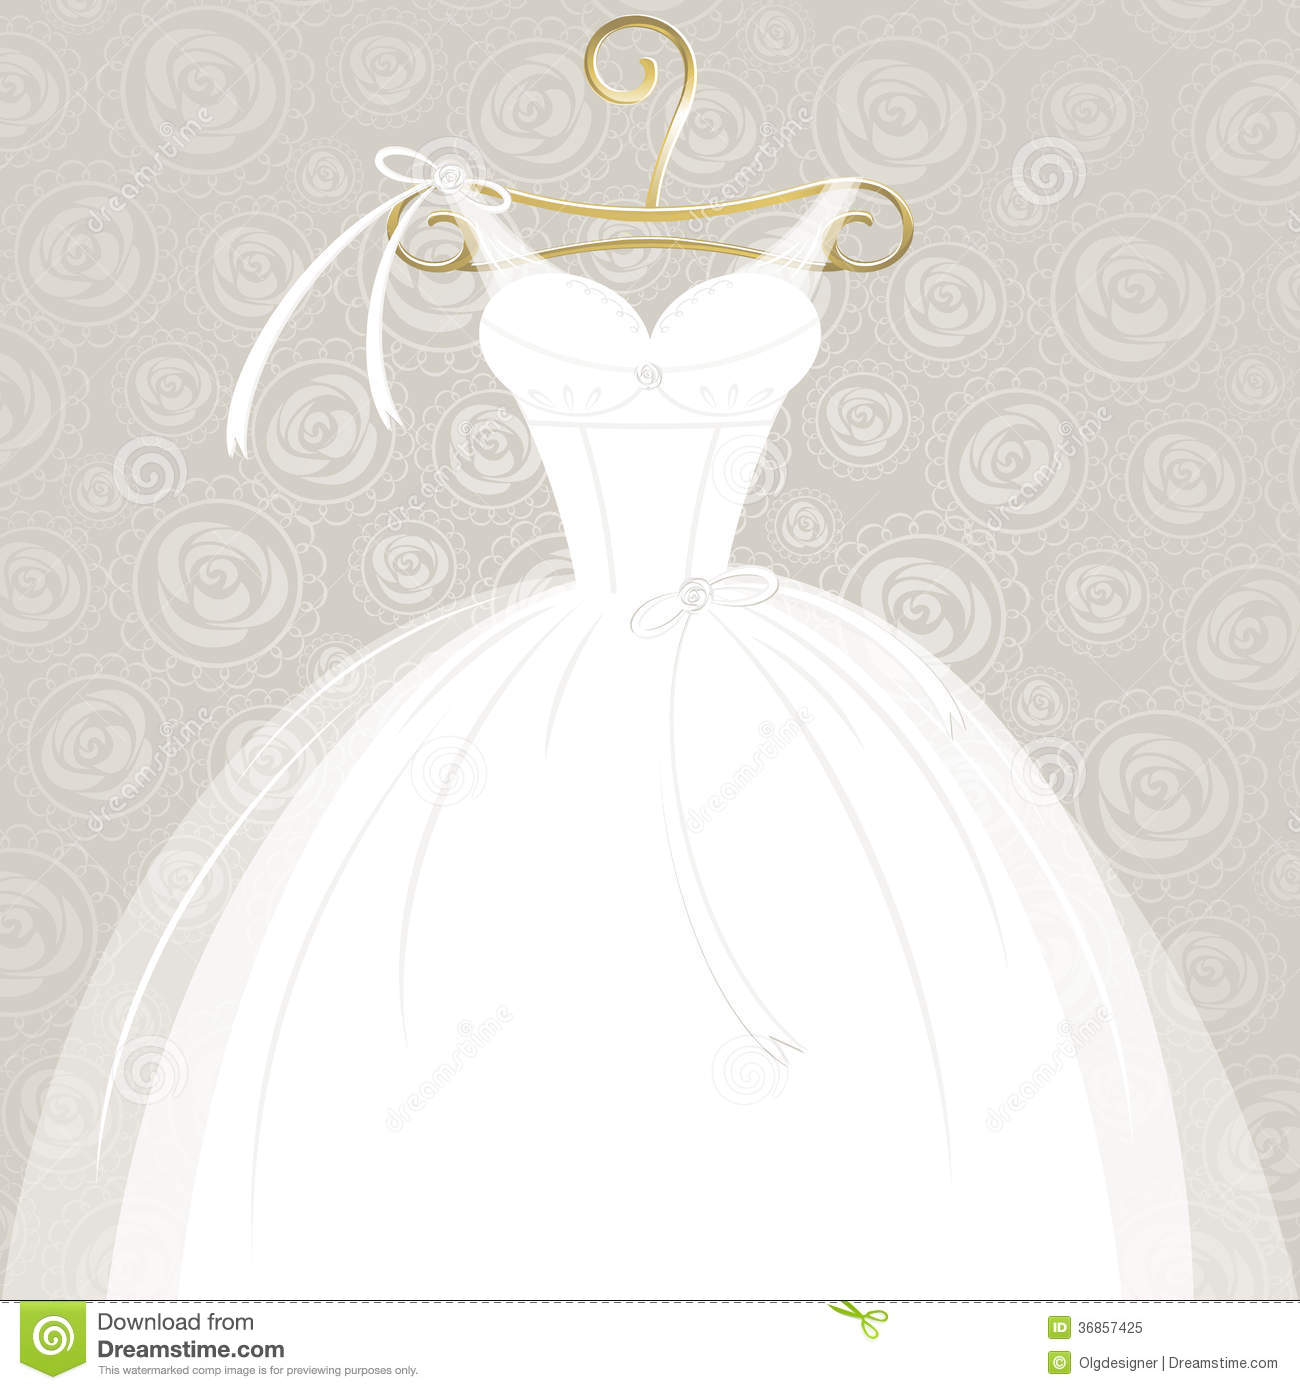 Clipart wedding dress clipart picture freeuse stock wedding dress digital vector clip art wedding gown clipart design ... picture freeuse stock